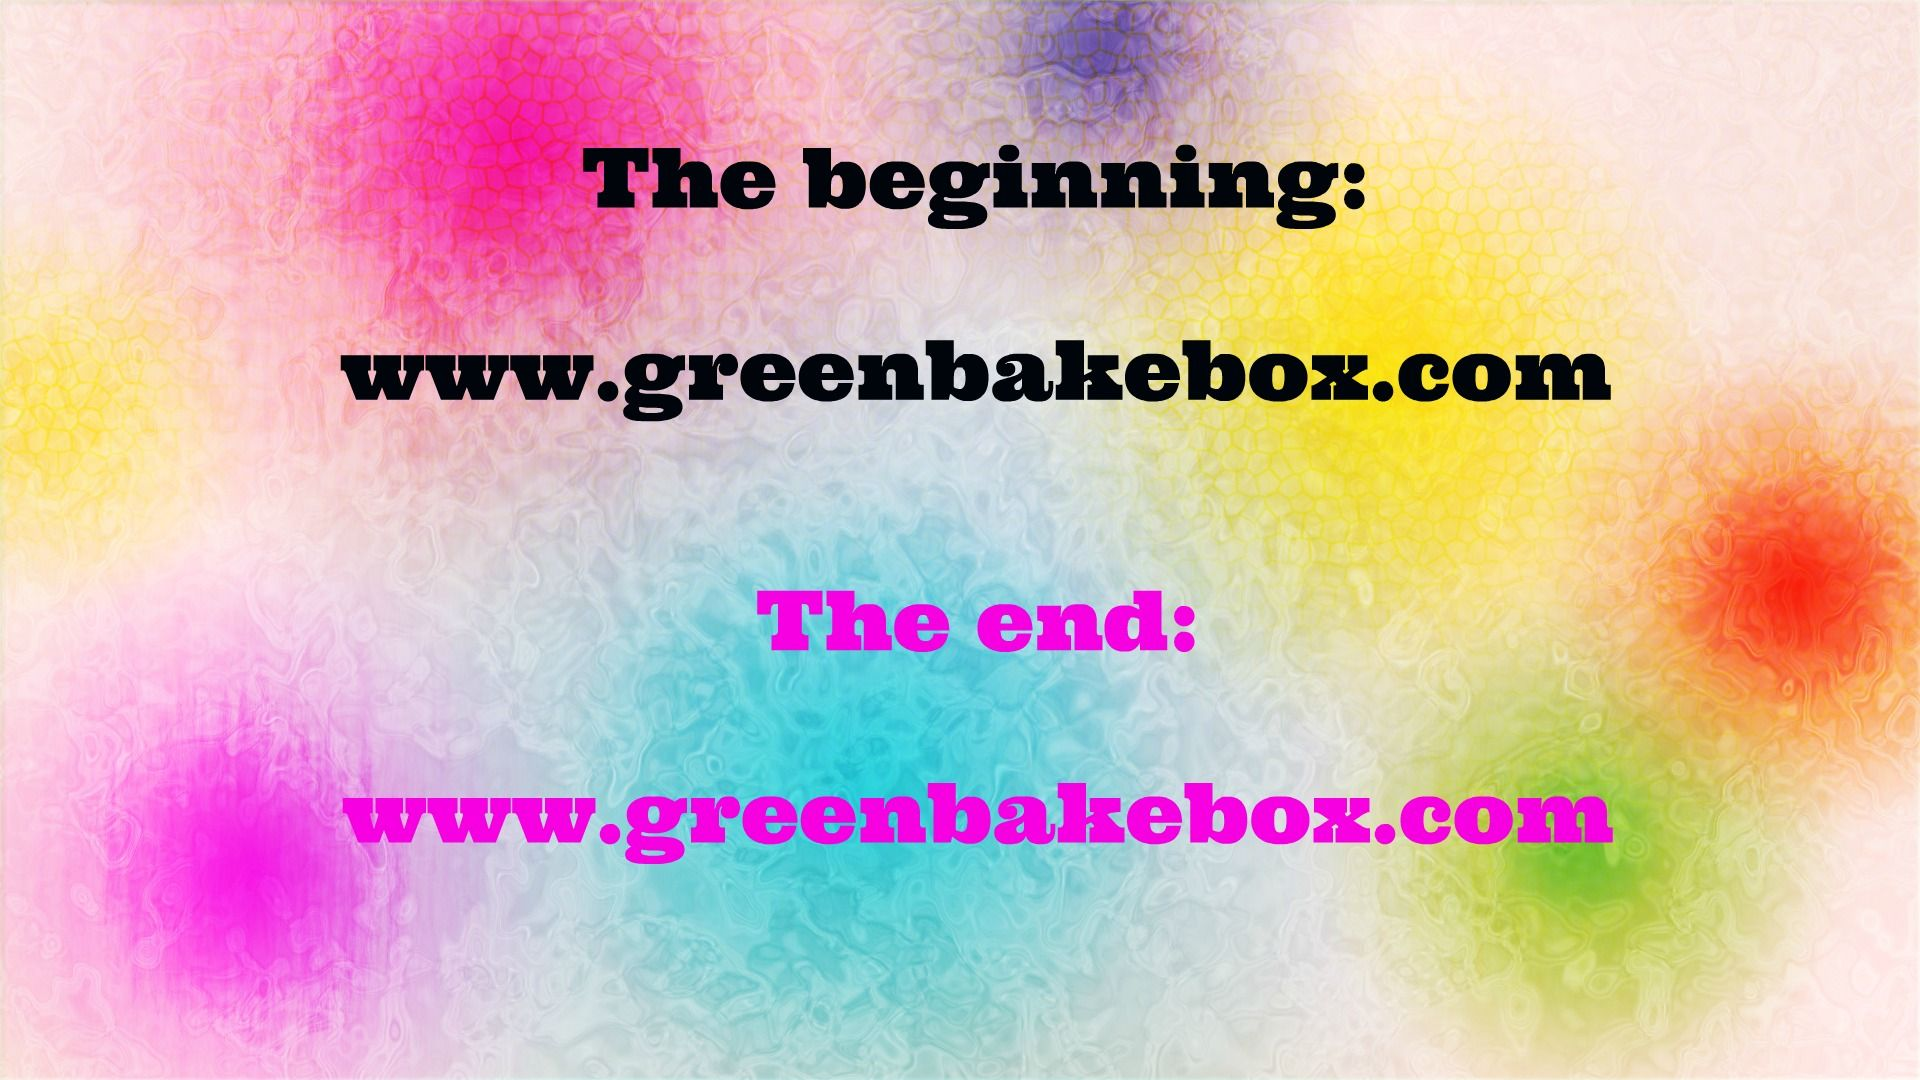 It revolves around the GBB, deal with it. #greenbakebox